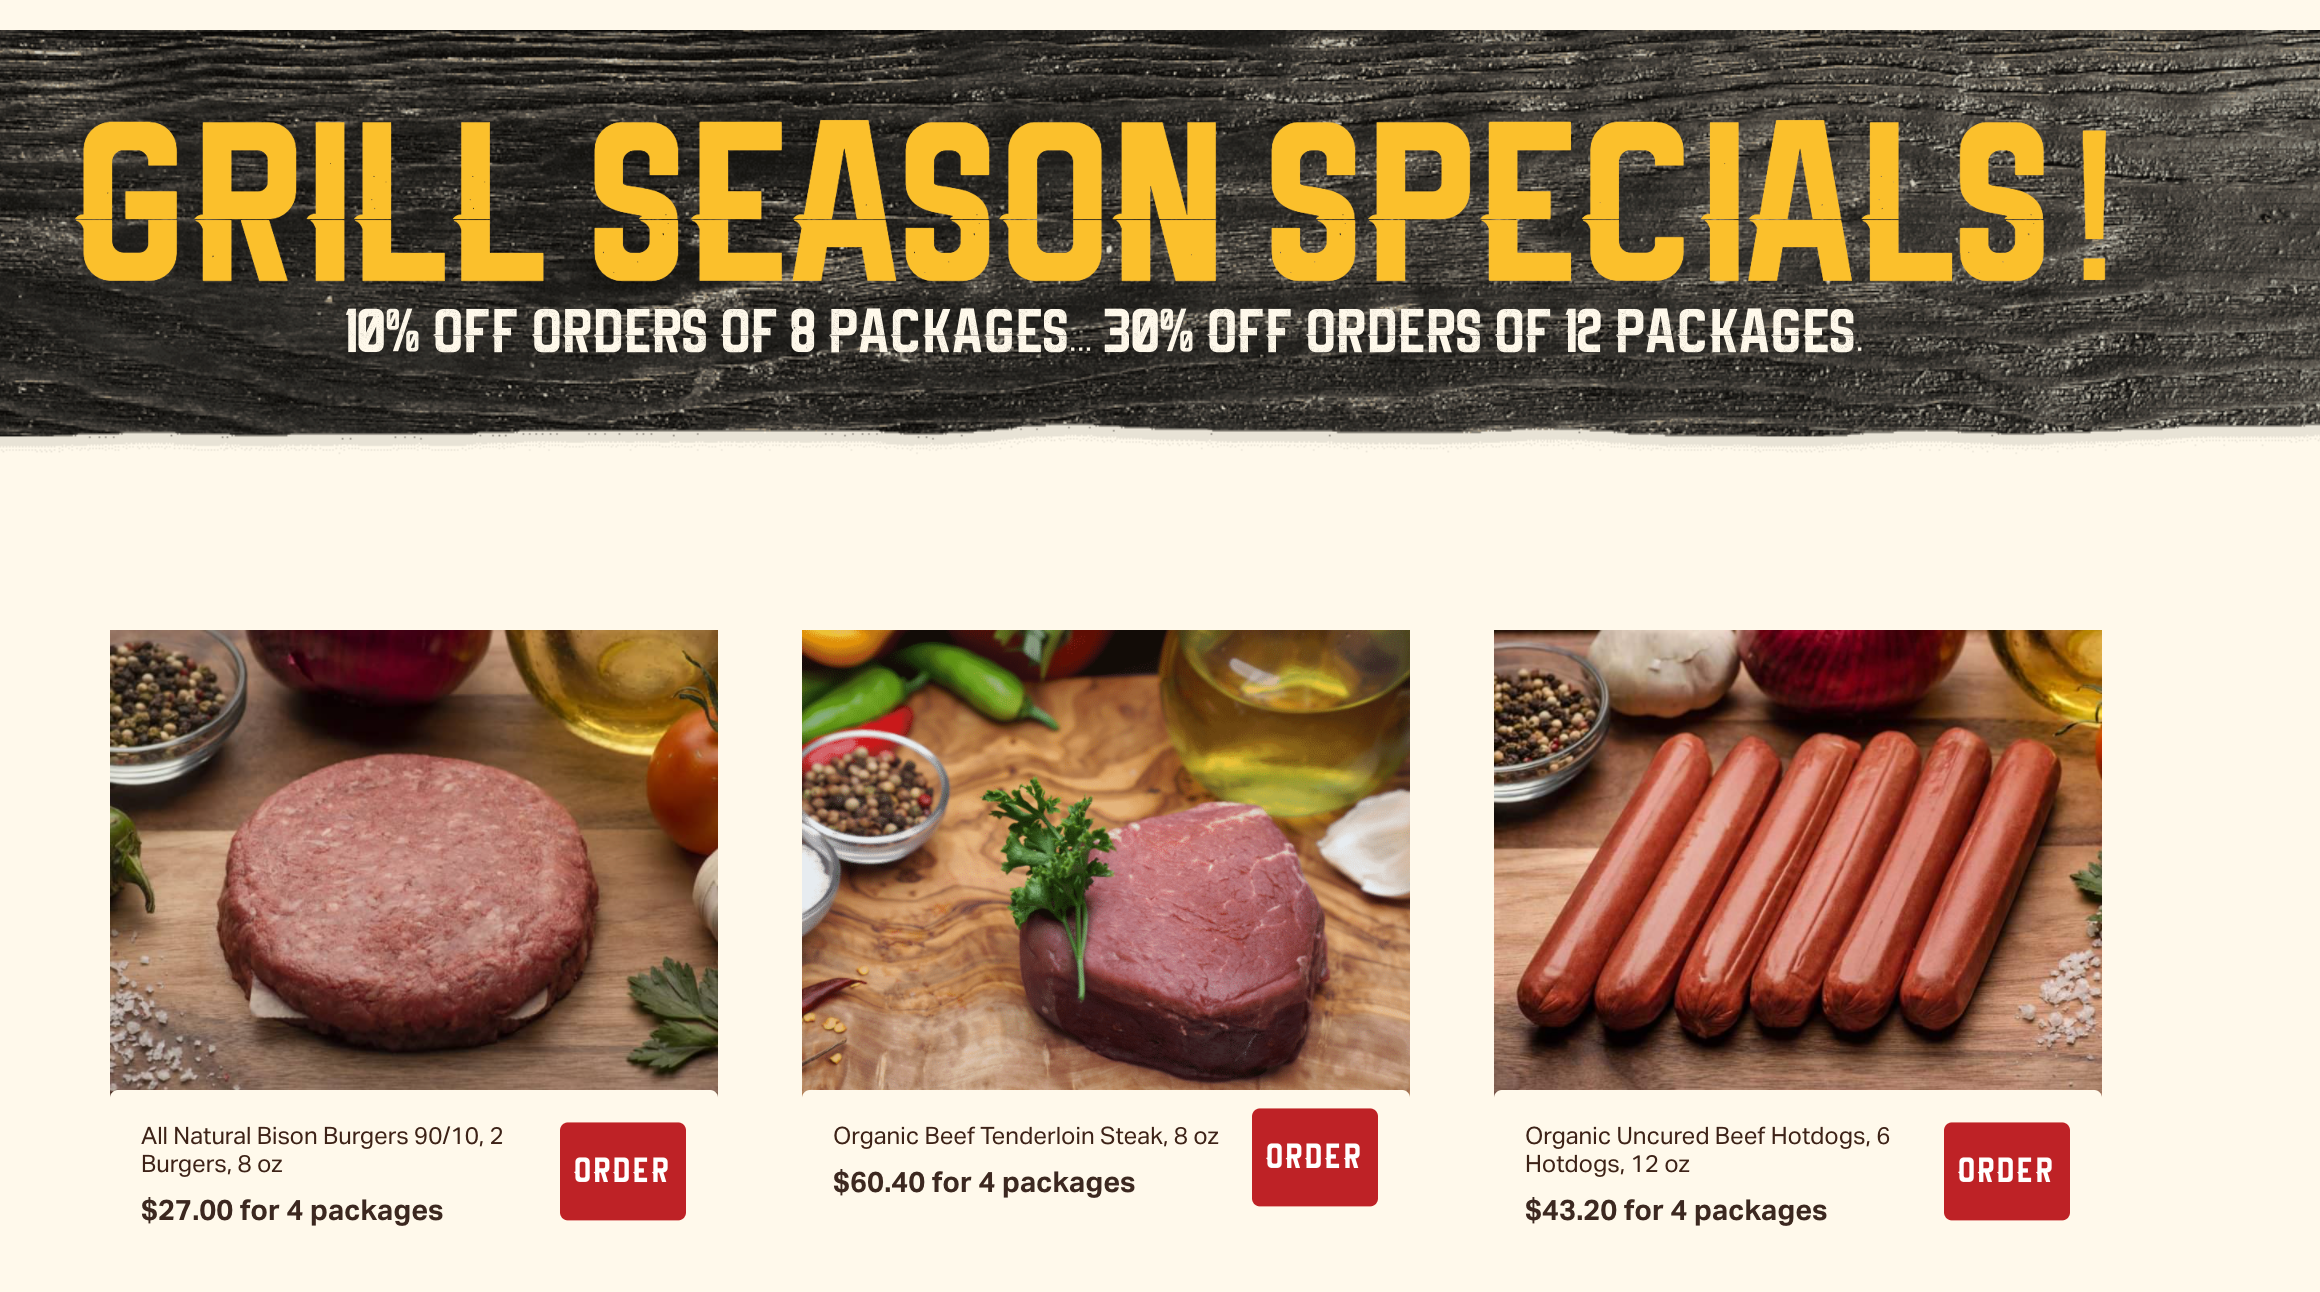 Grill season specials from Frontiere Natural Meats